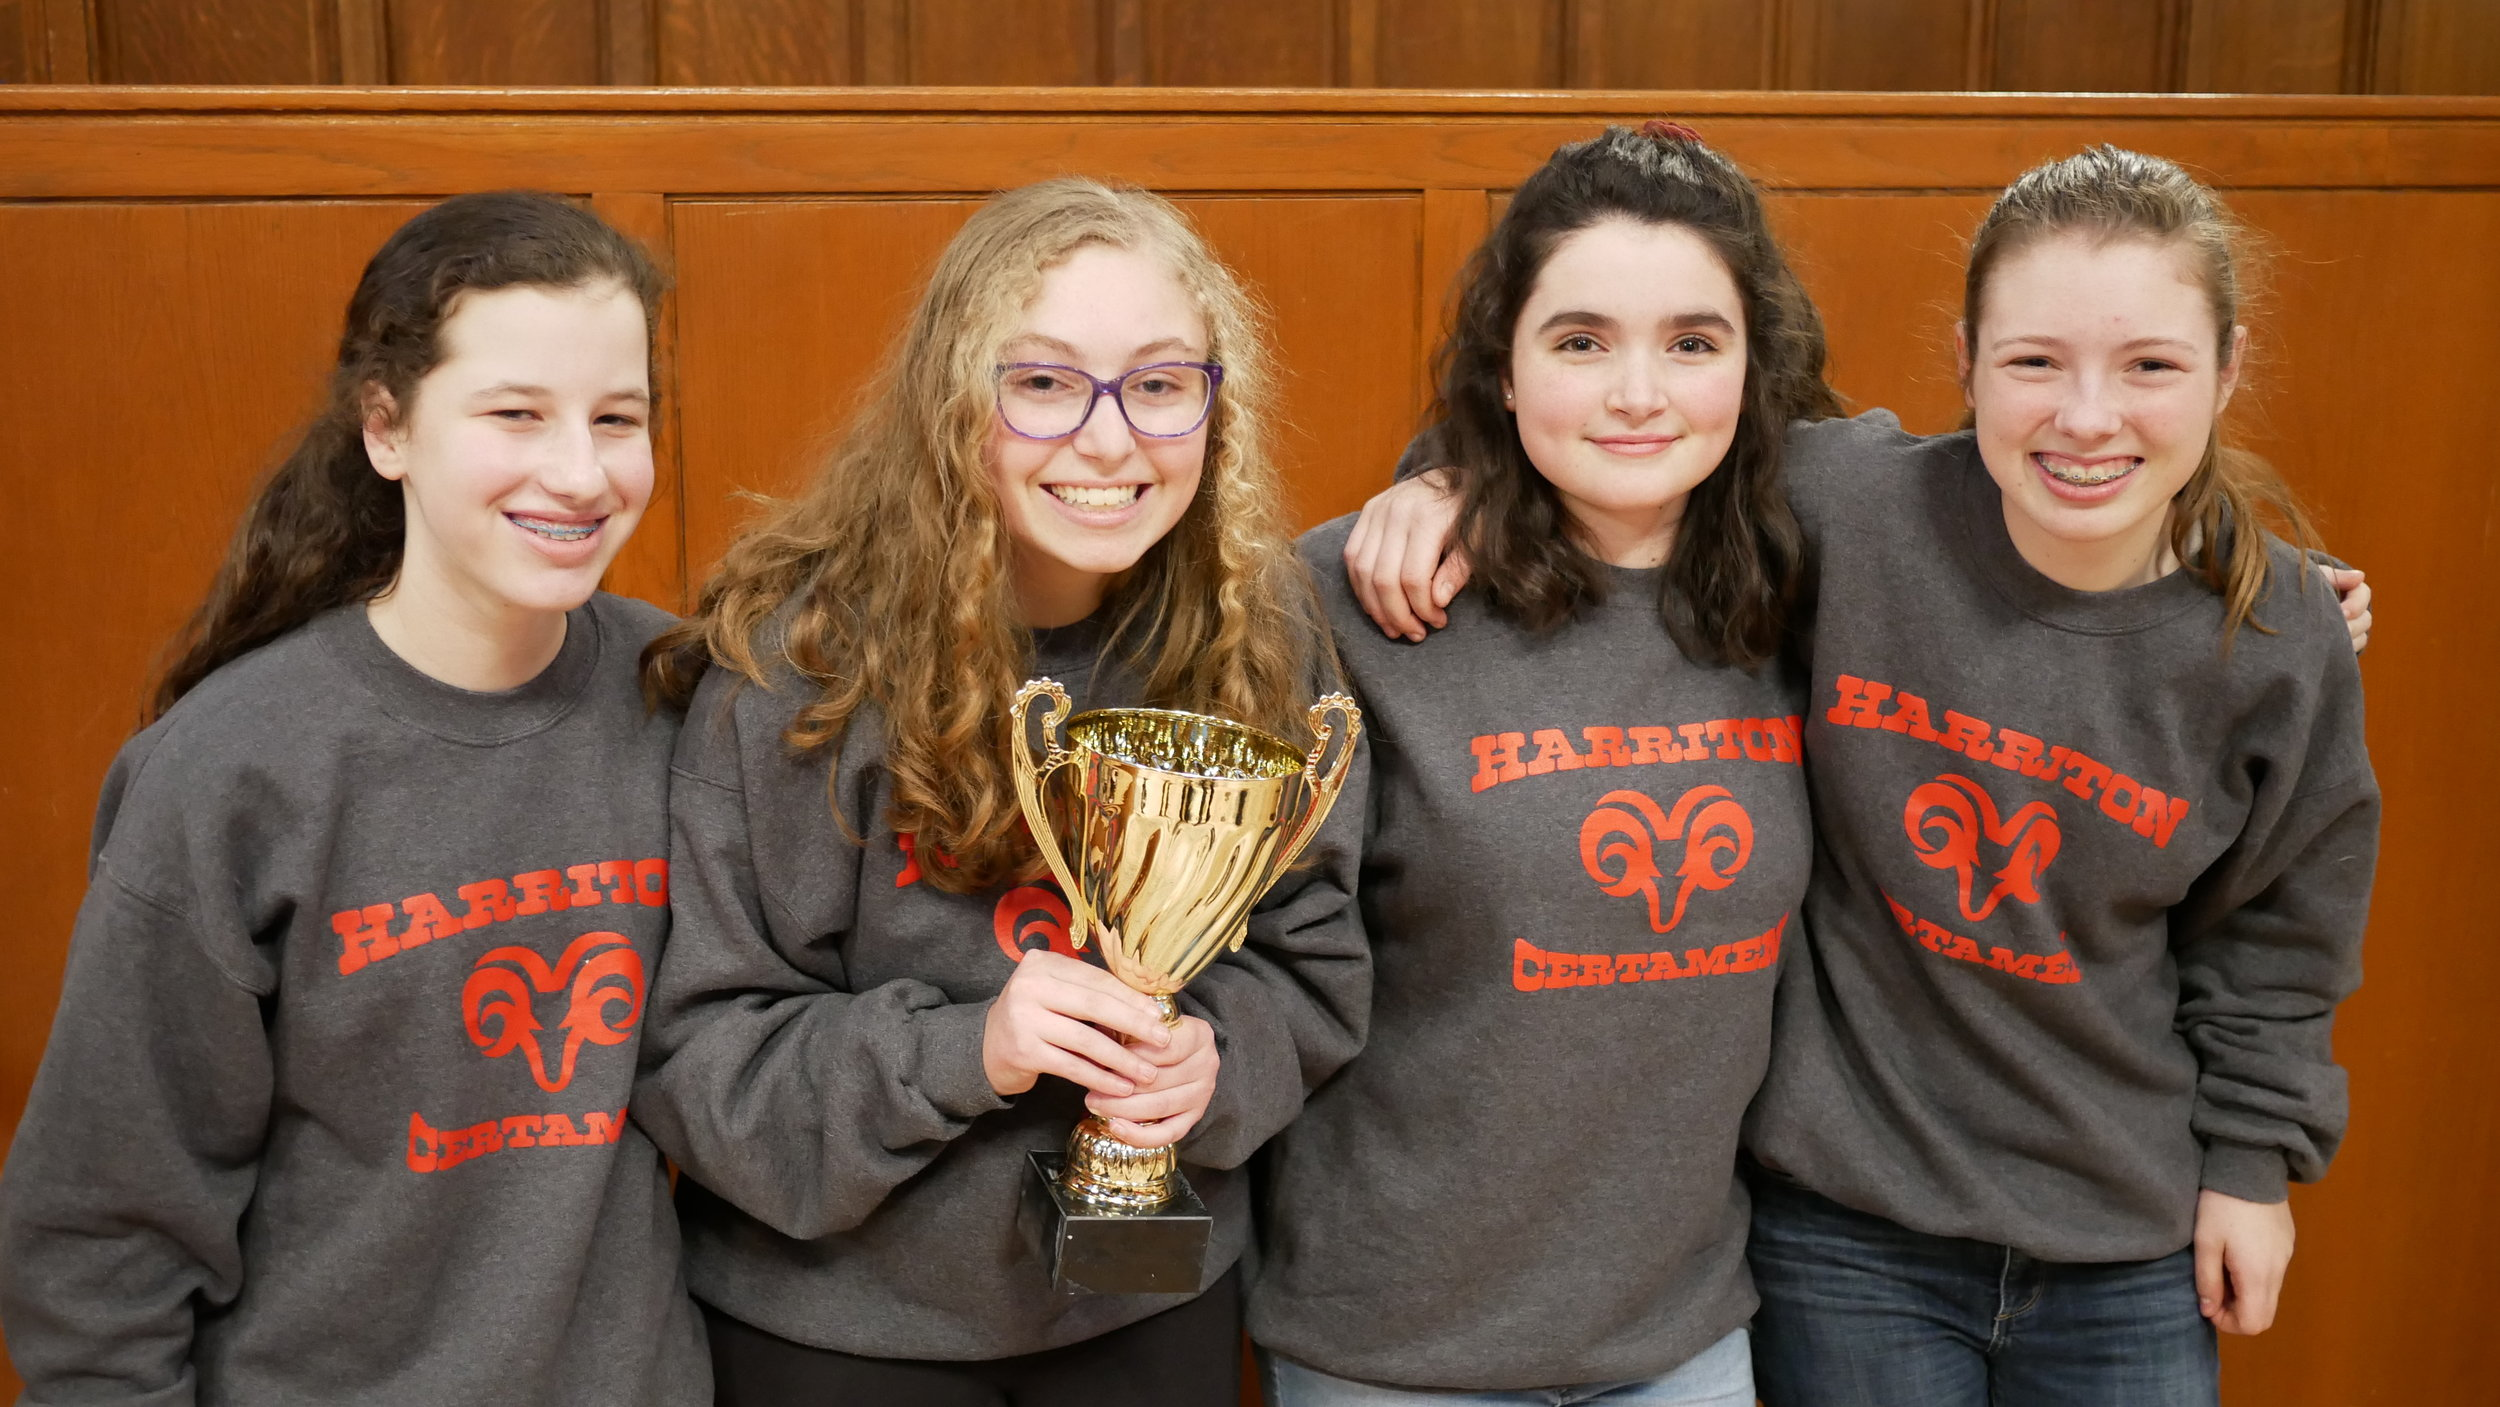 Harriton High School (PA) - 1st Place Novice Division 2019